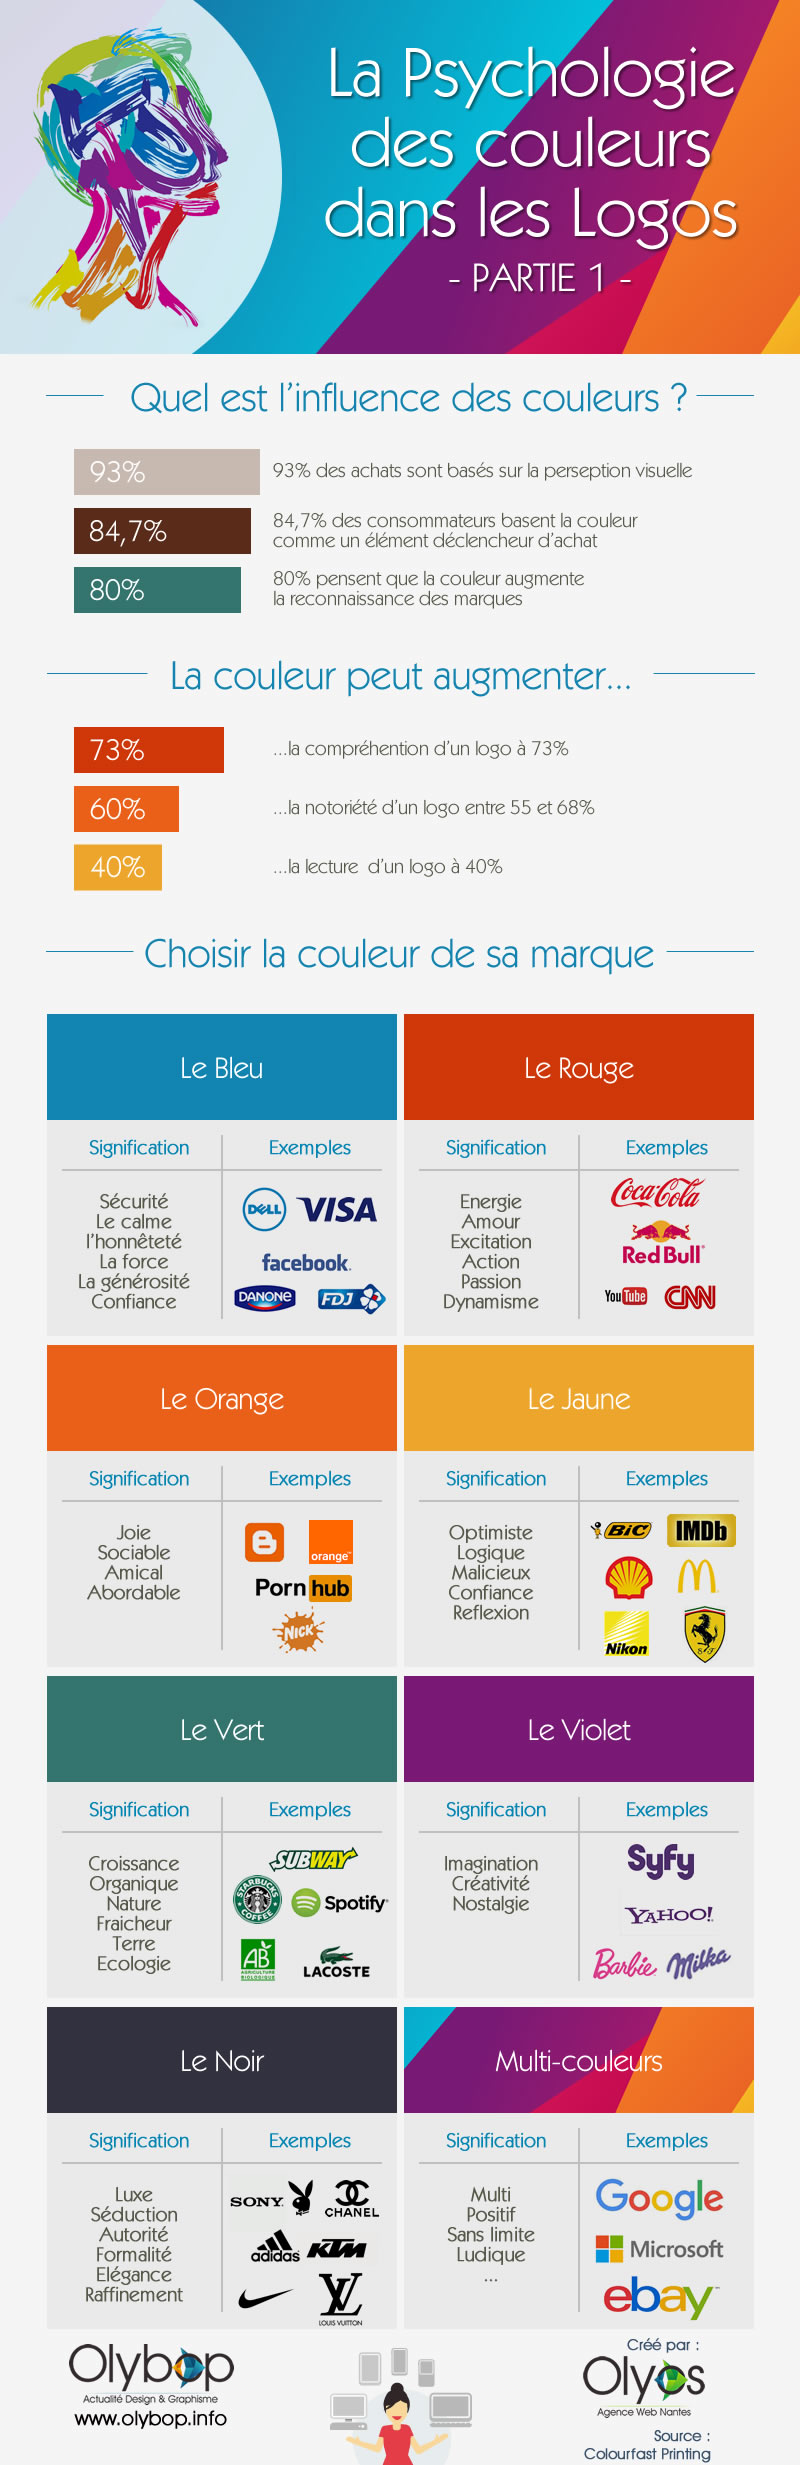 signification-couleurs-2016-infographie-olybop